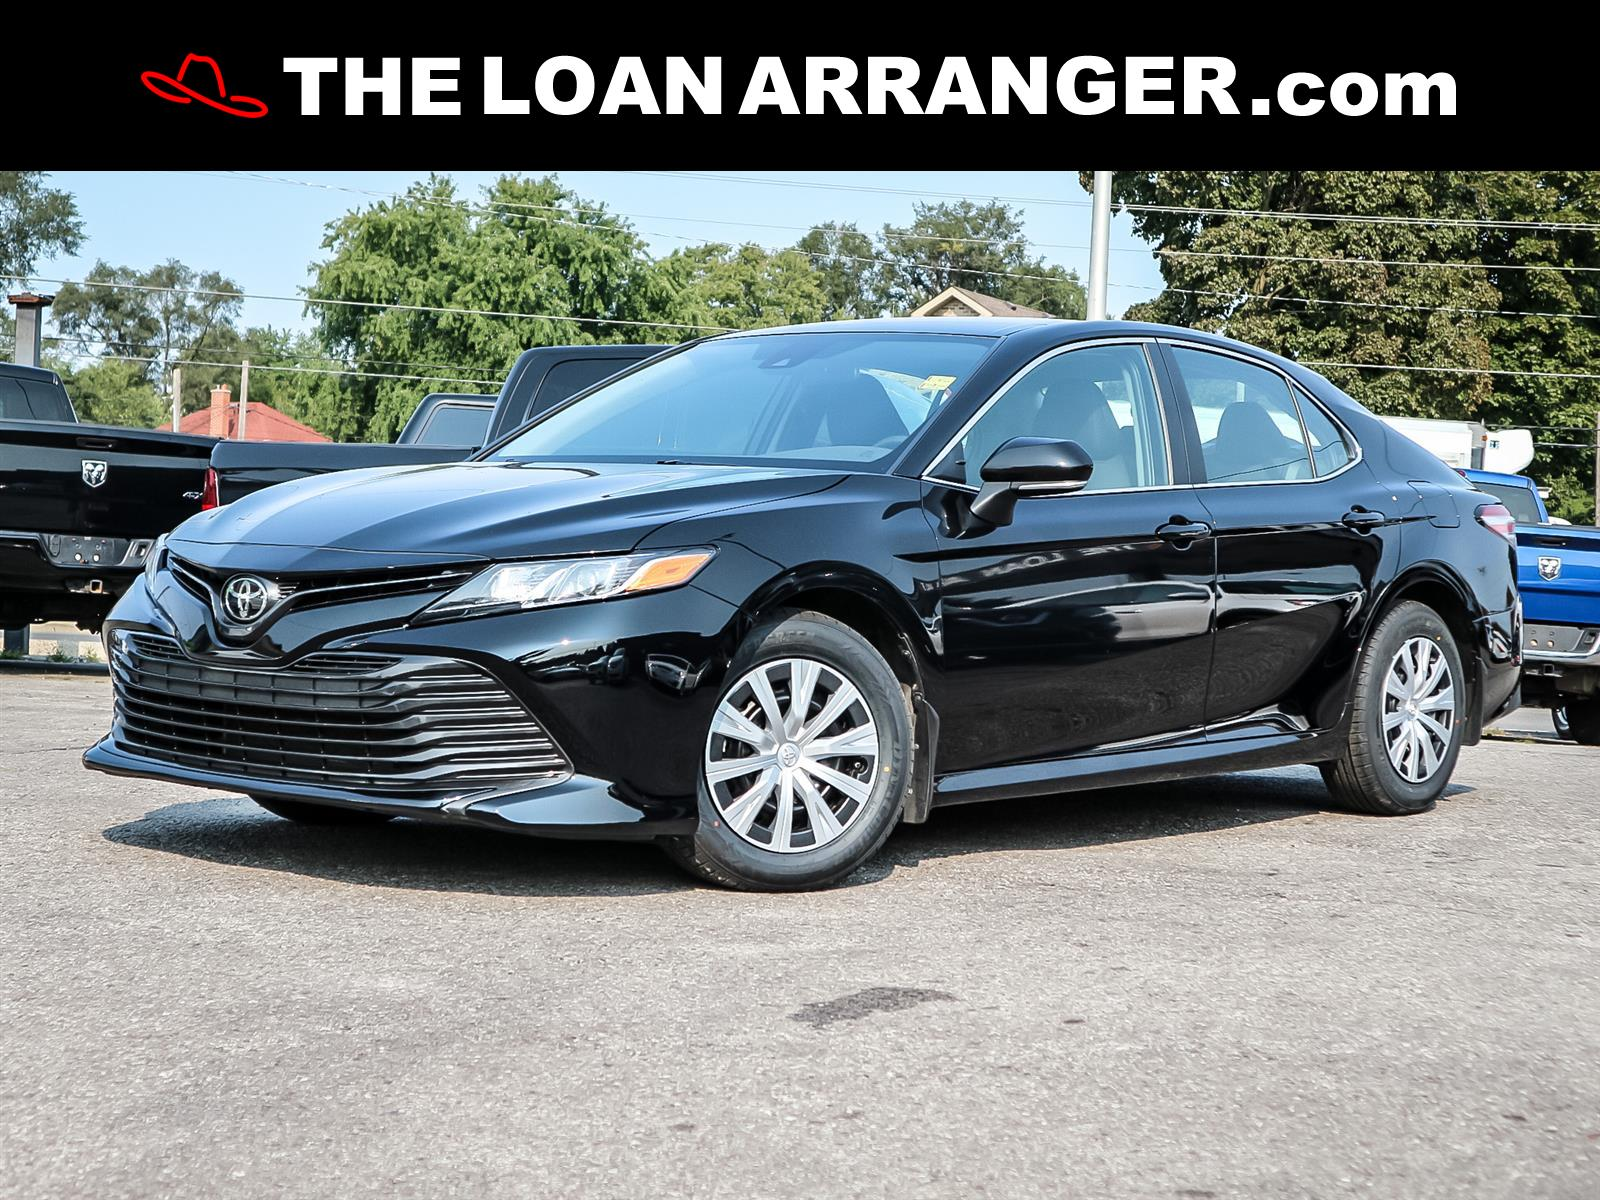 used 2019 Toyota Camry car